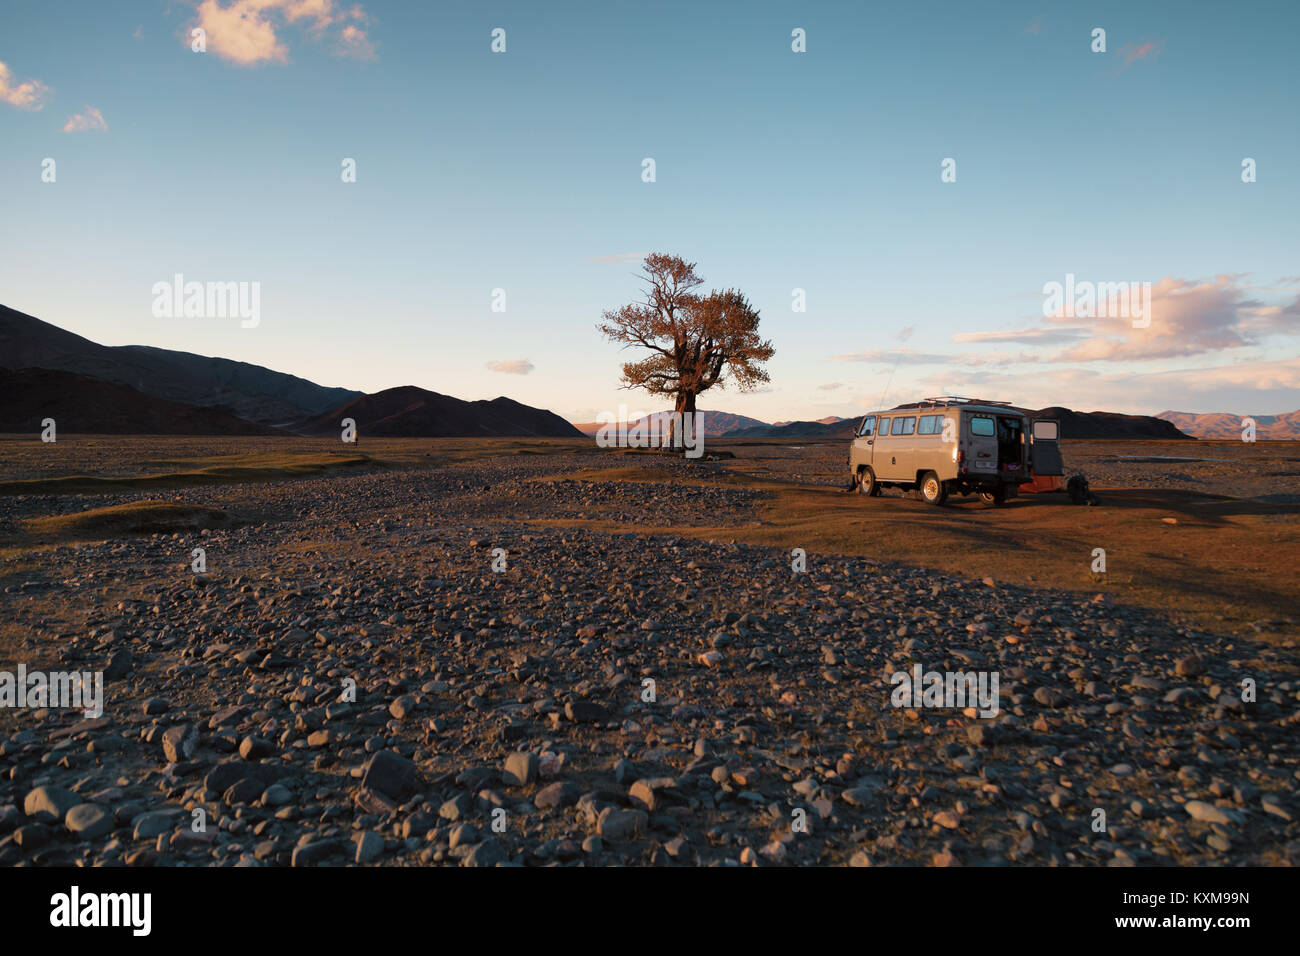 Camping site camper van sunset light lonely tree Mongolia river bed russian UAZ 452 - Stock Image